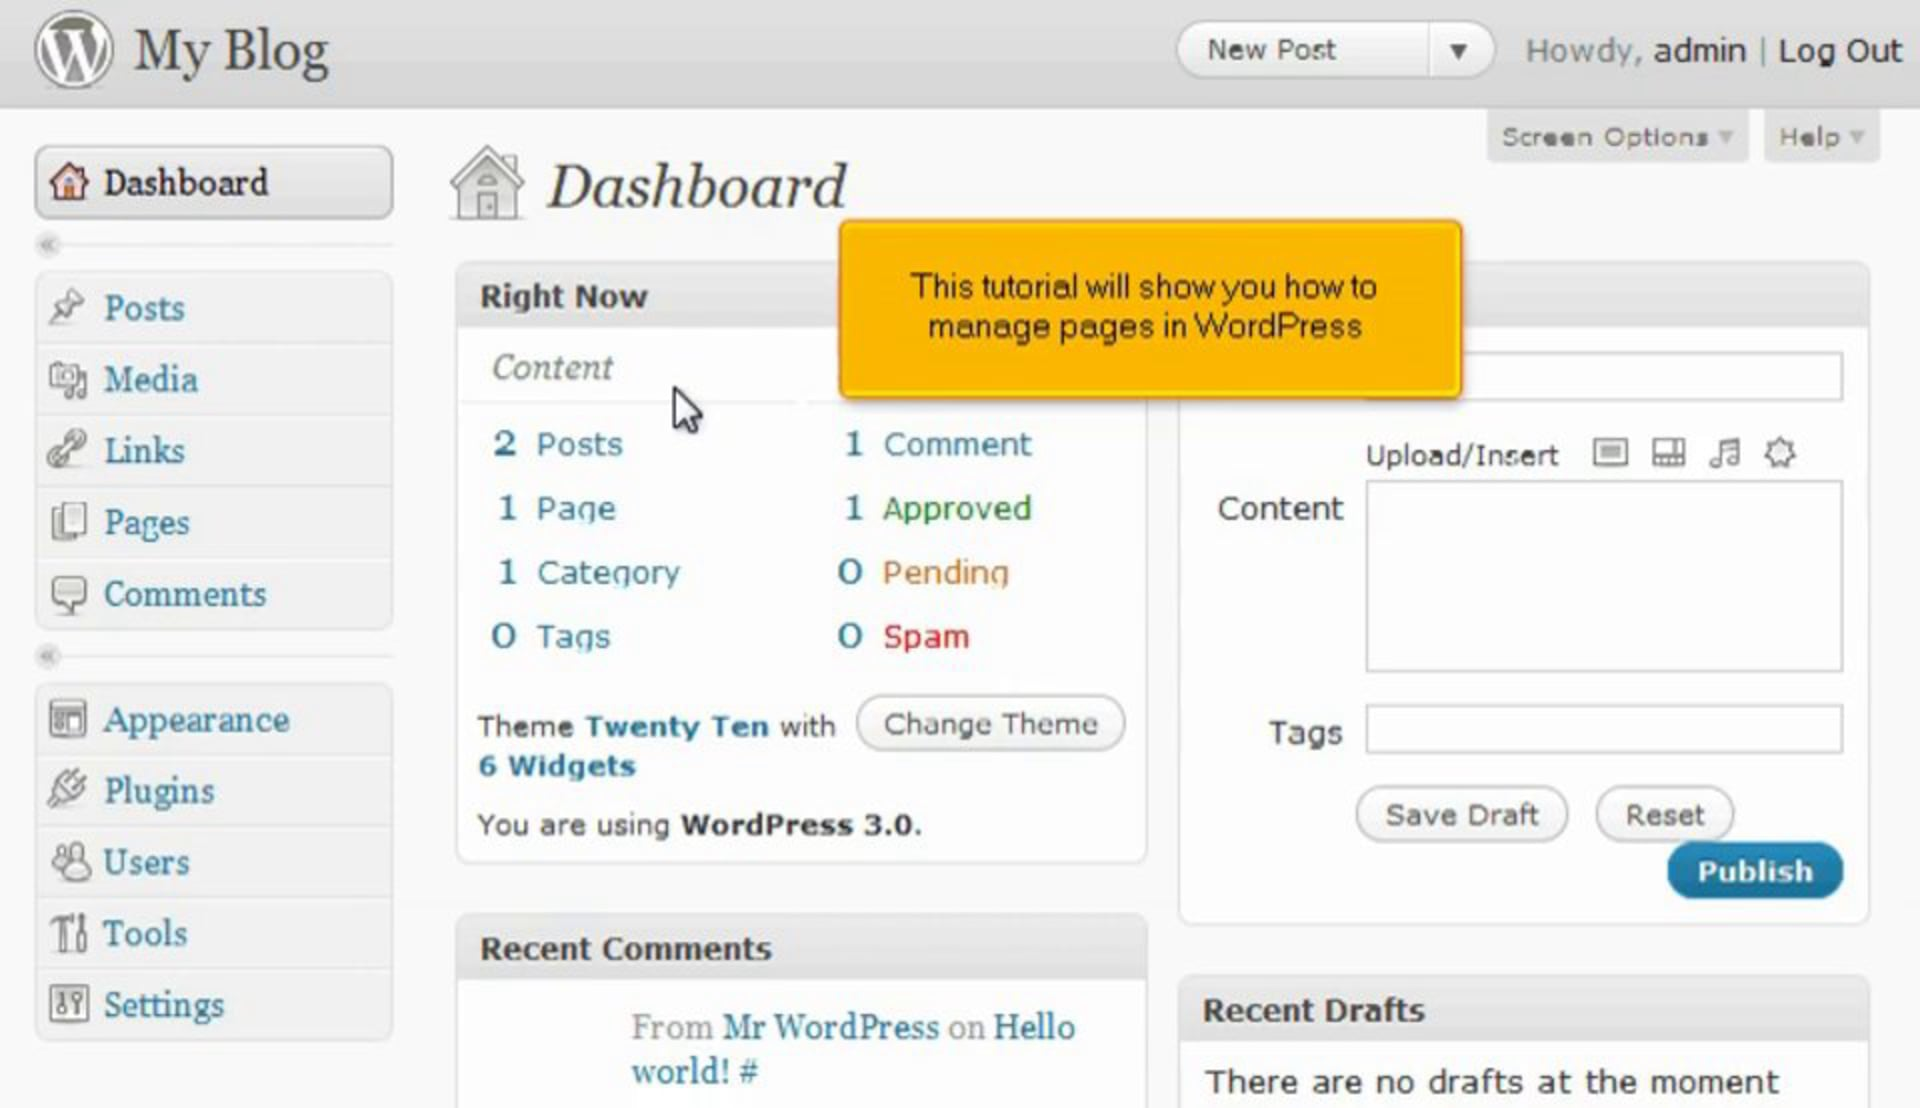 how-to-manage-pages-in-wordpress.jpg